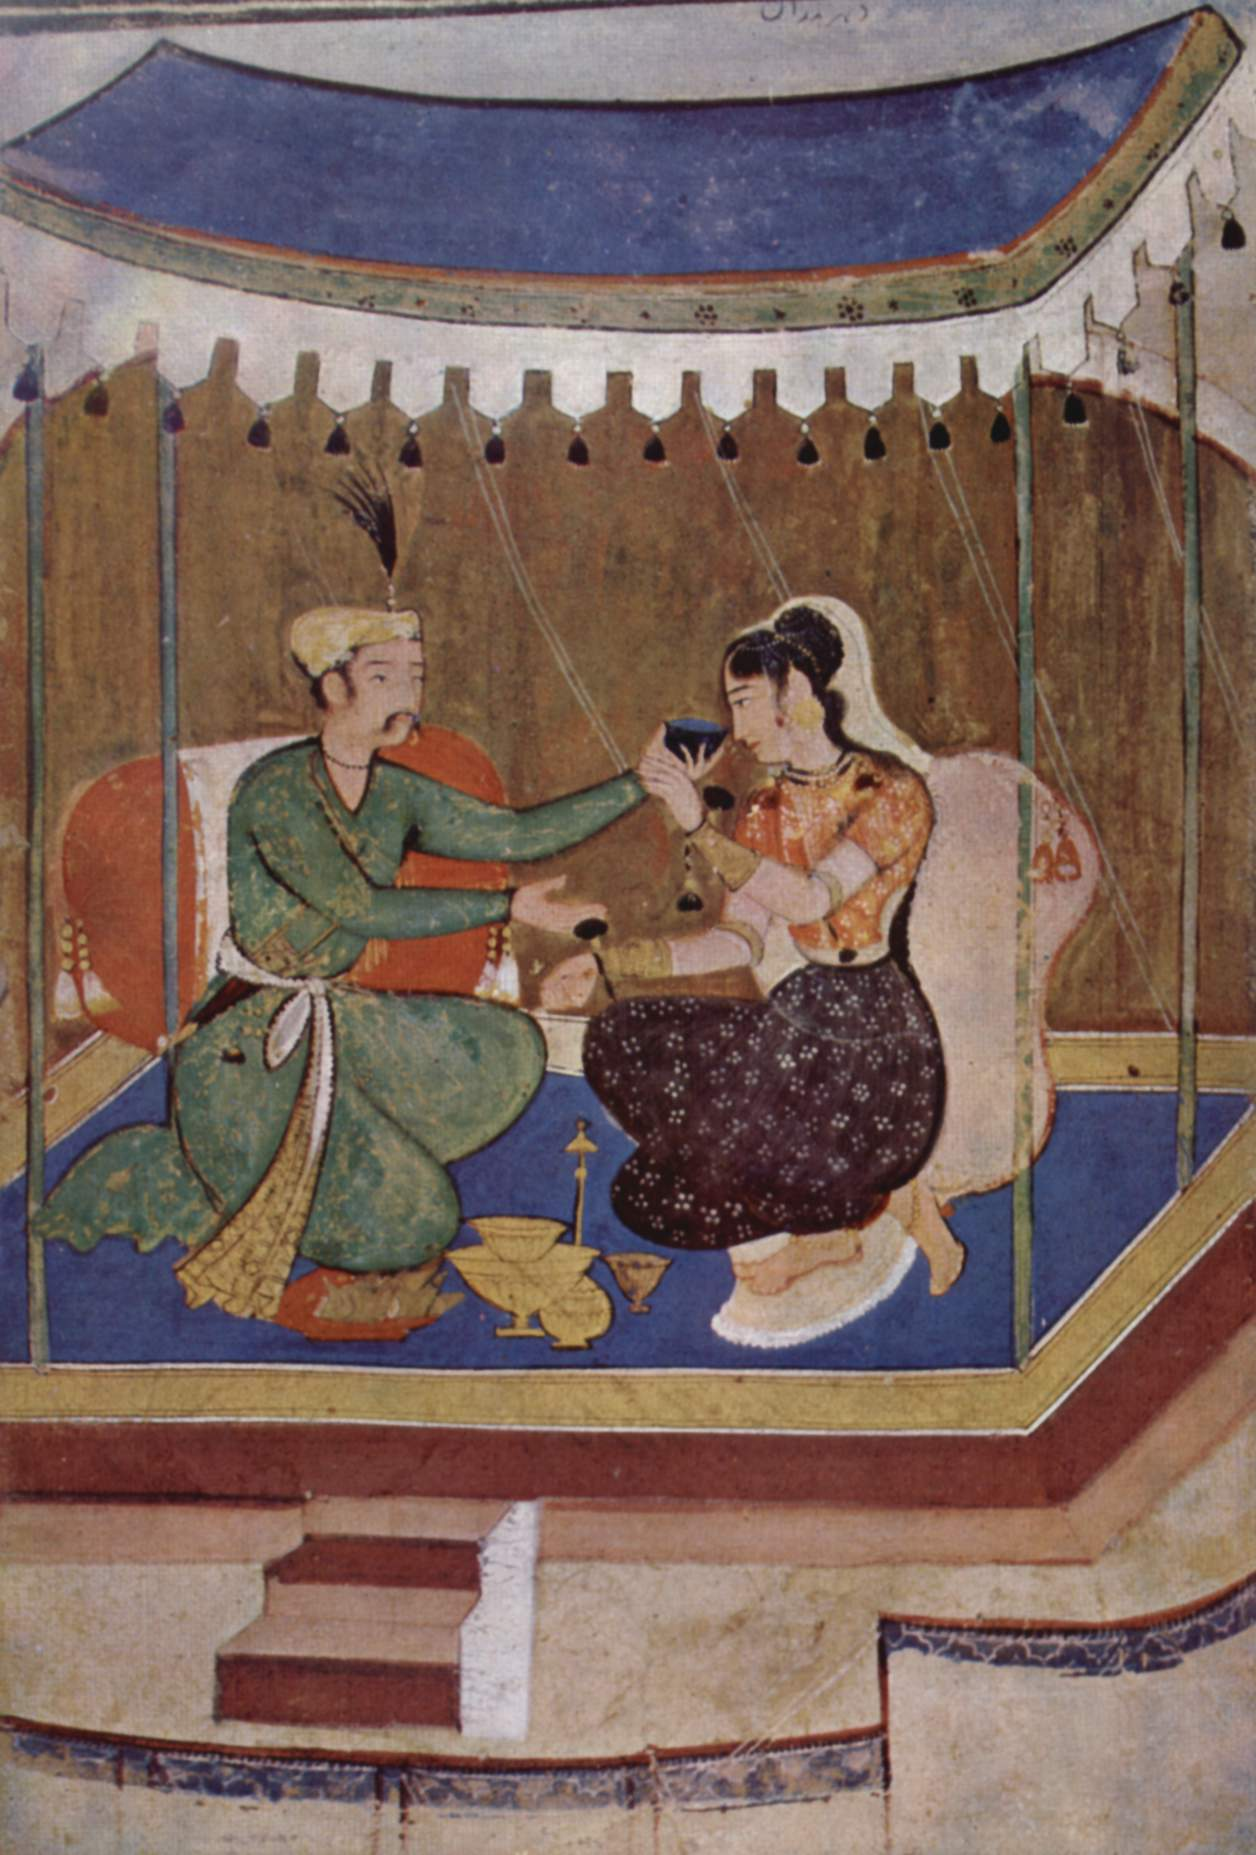 mughal painting Get this from a library mughal painting [j v s wilkinson.